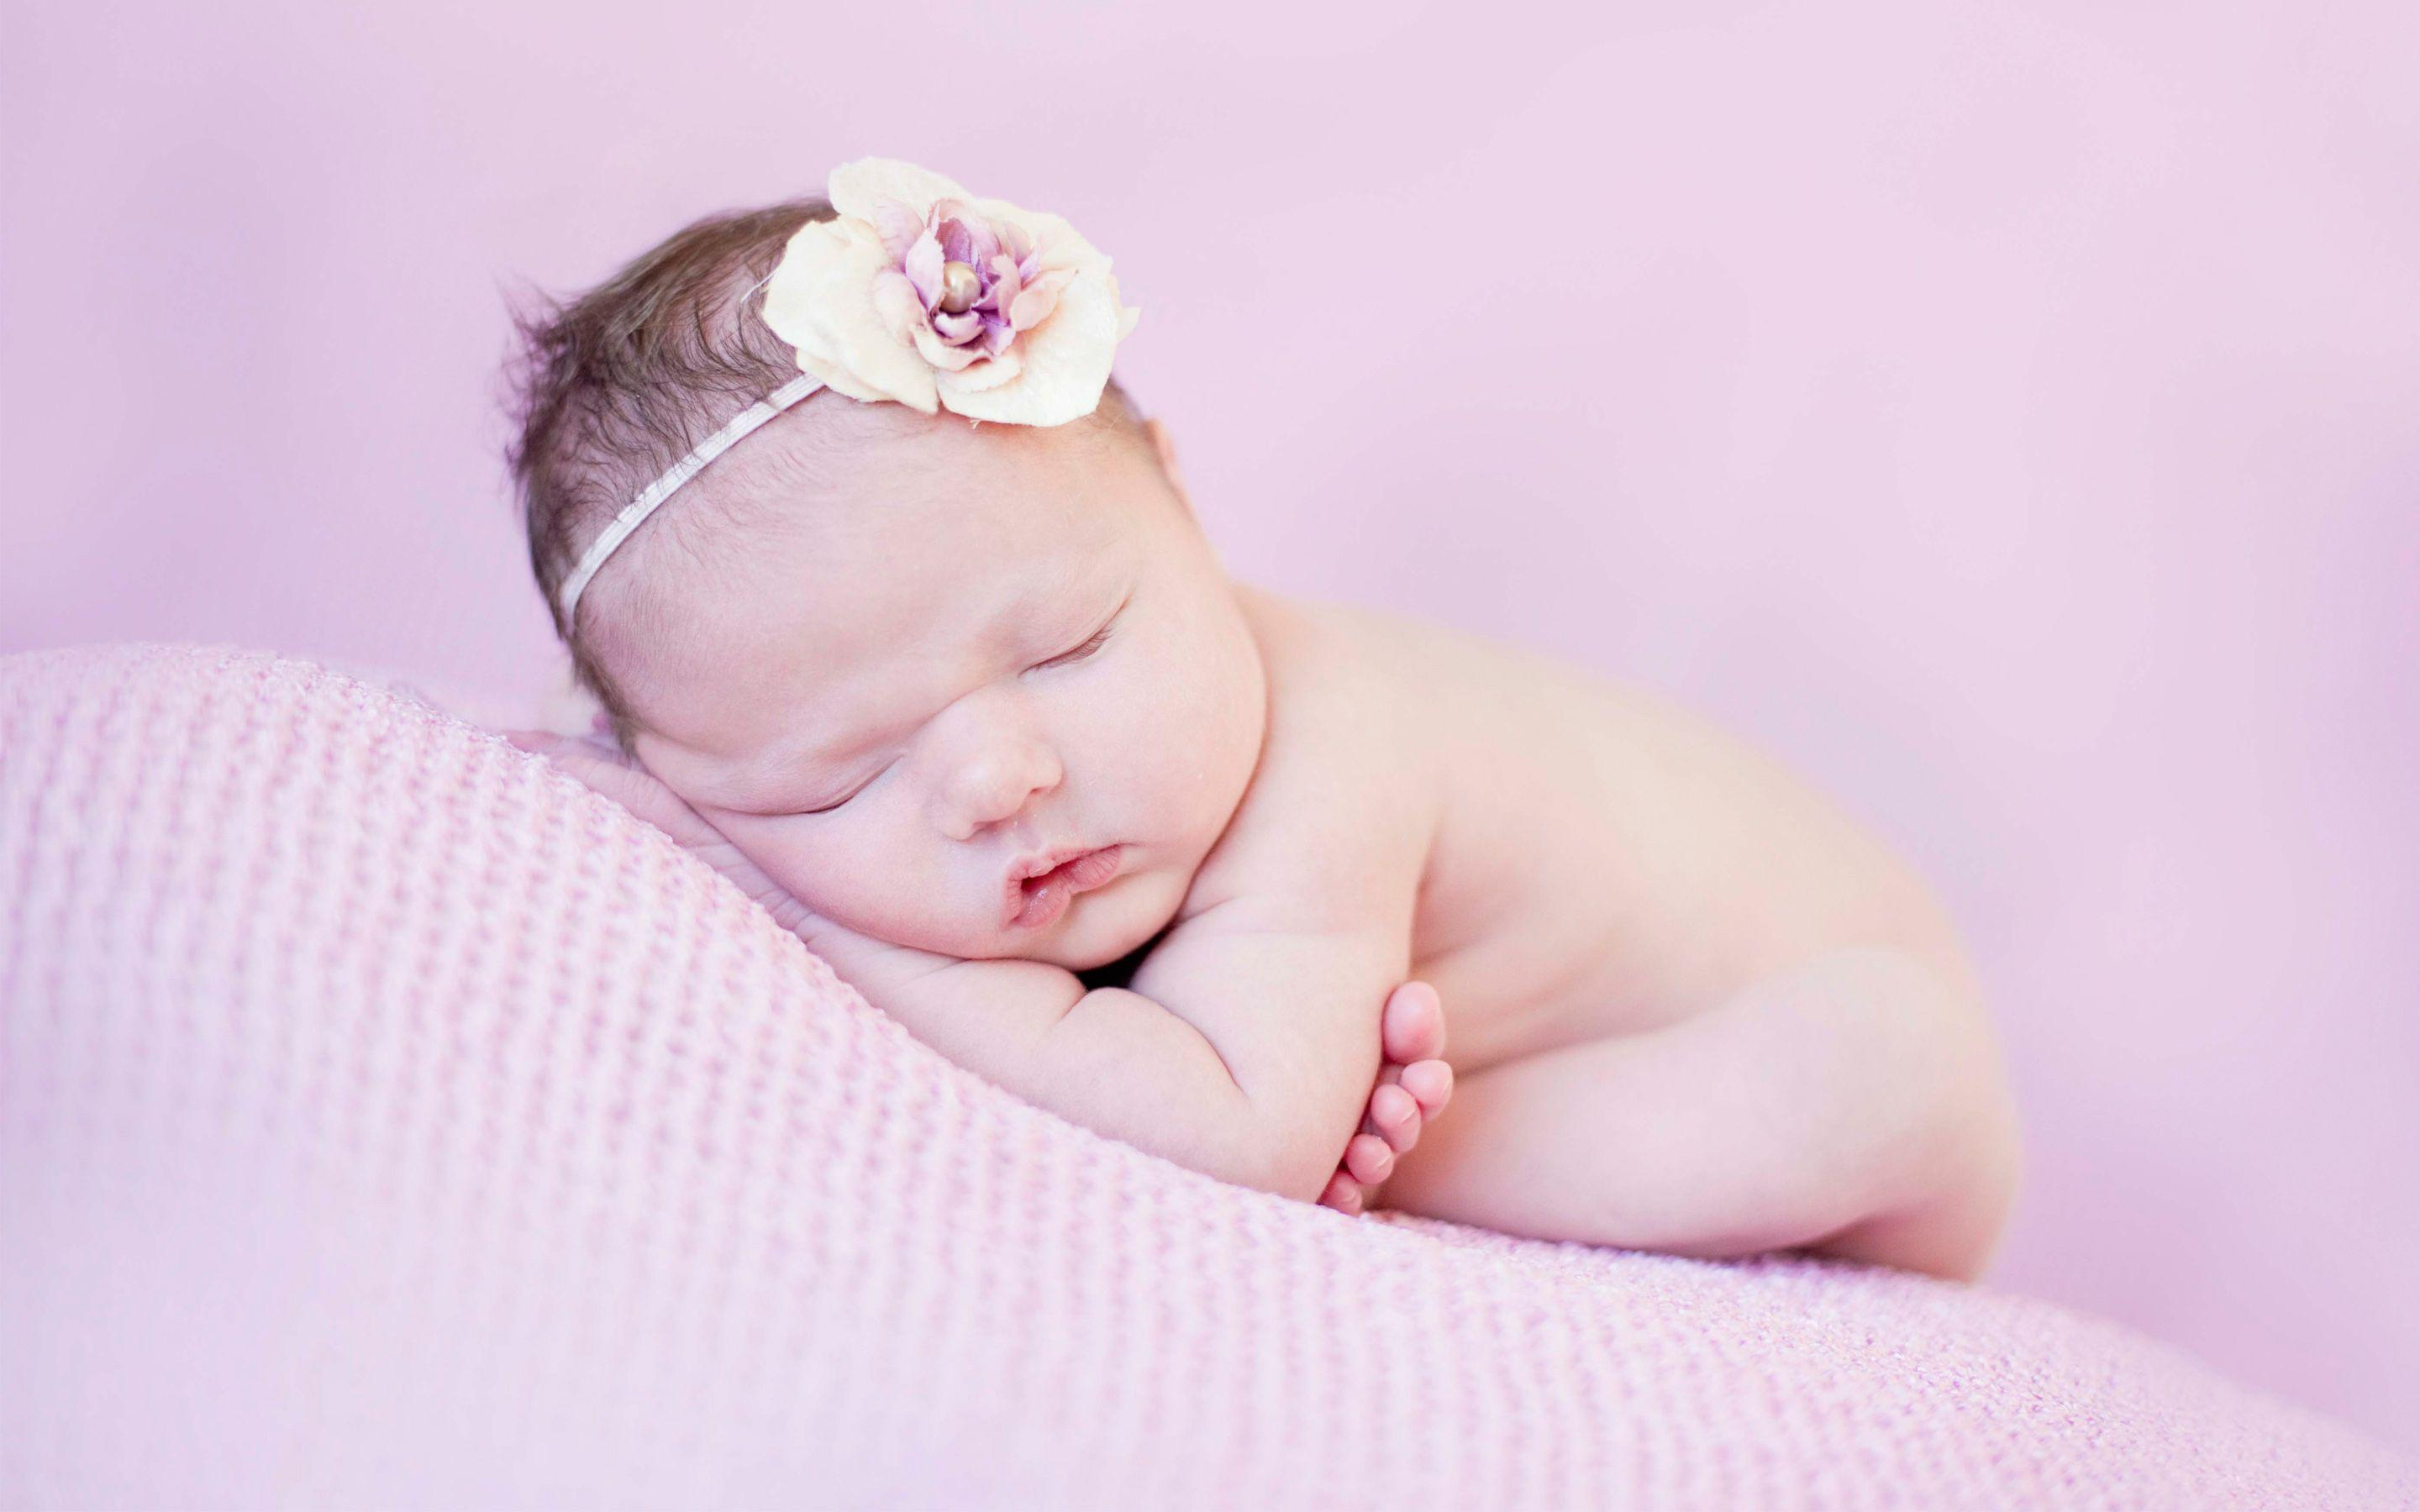 Cute Newborn Wallpapers | HD Wallpapers